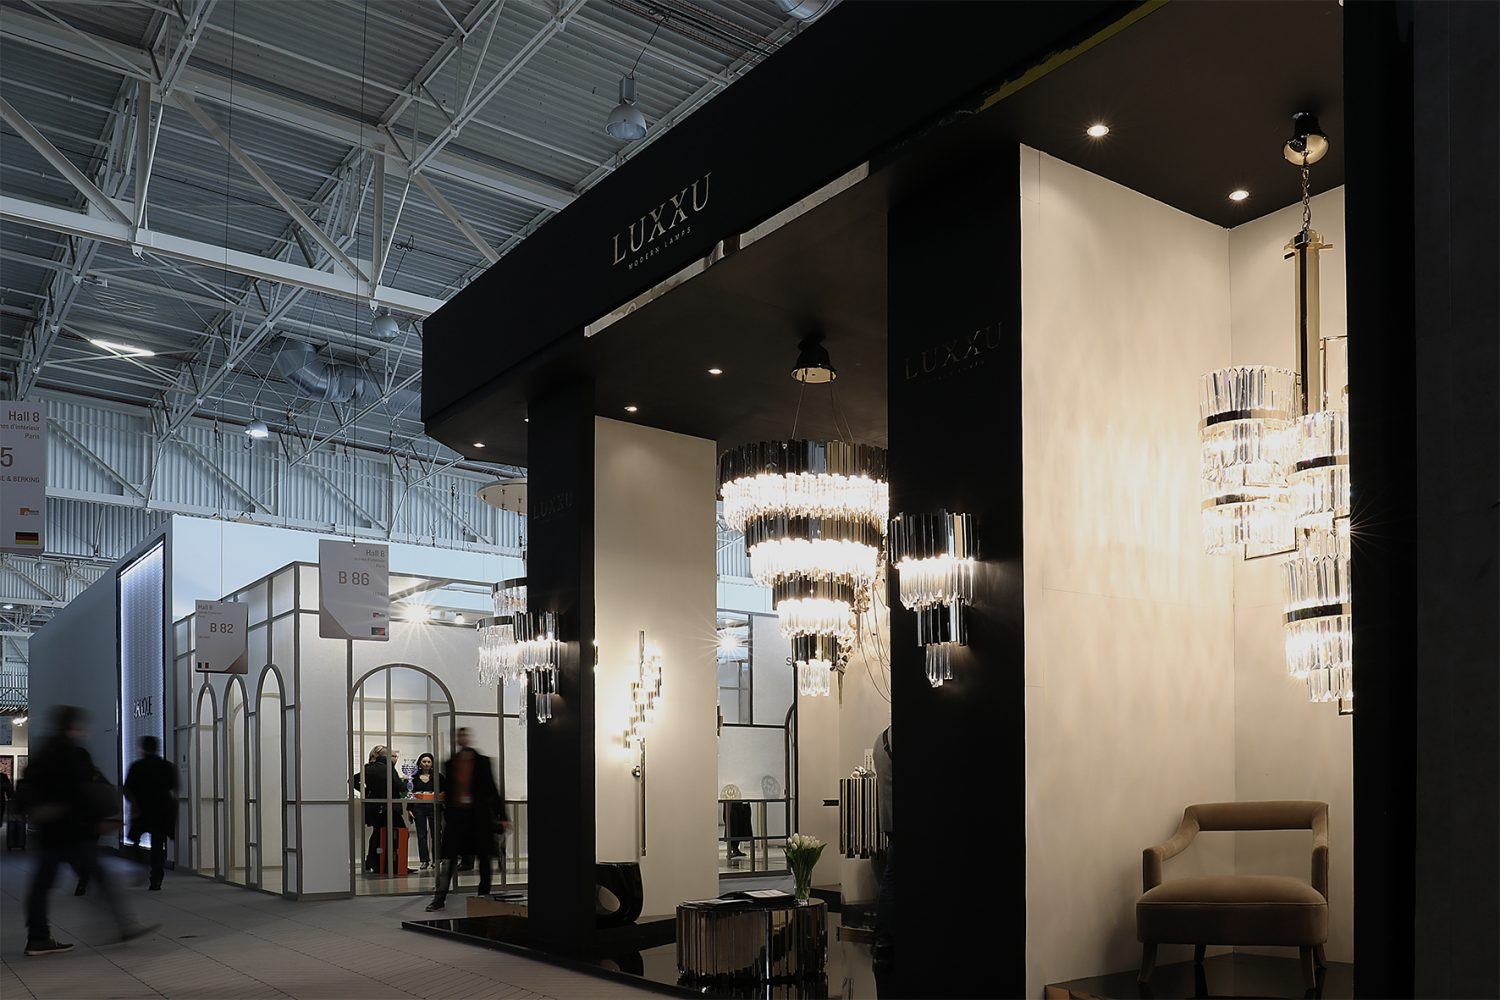 Design Trends to Watch For at Maison et Objet's platform MOM maison et objet Design Trends to Watch For at Maison et Objet's platform MOM Design Trends to Watch For at Maison et Objet   s platform MOM 2